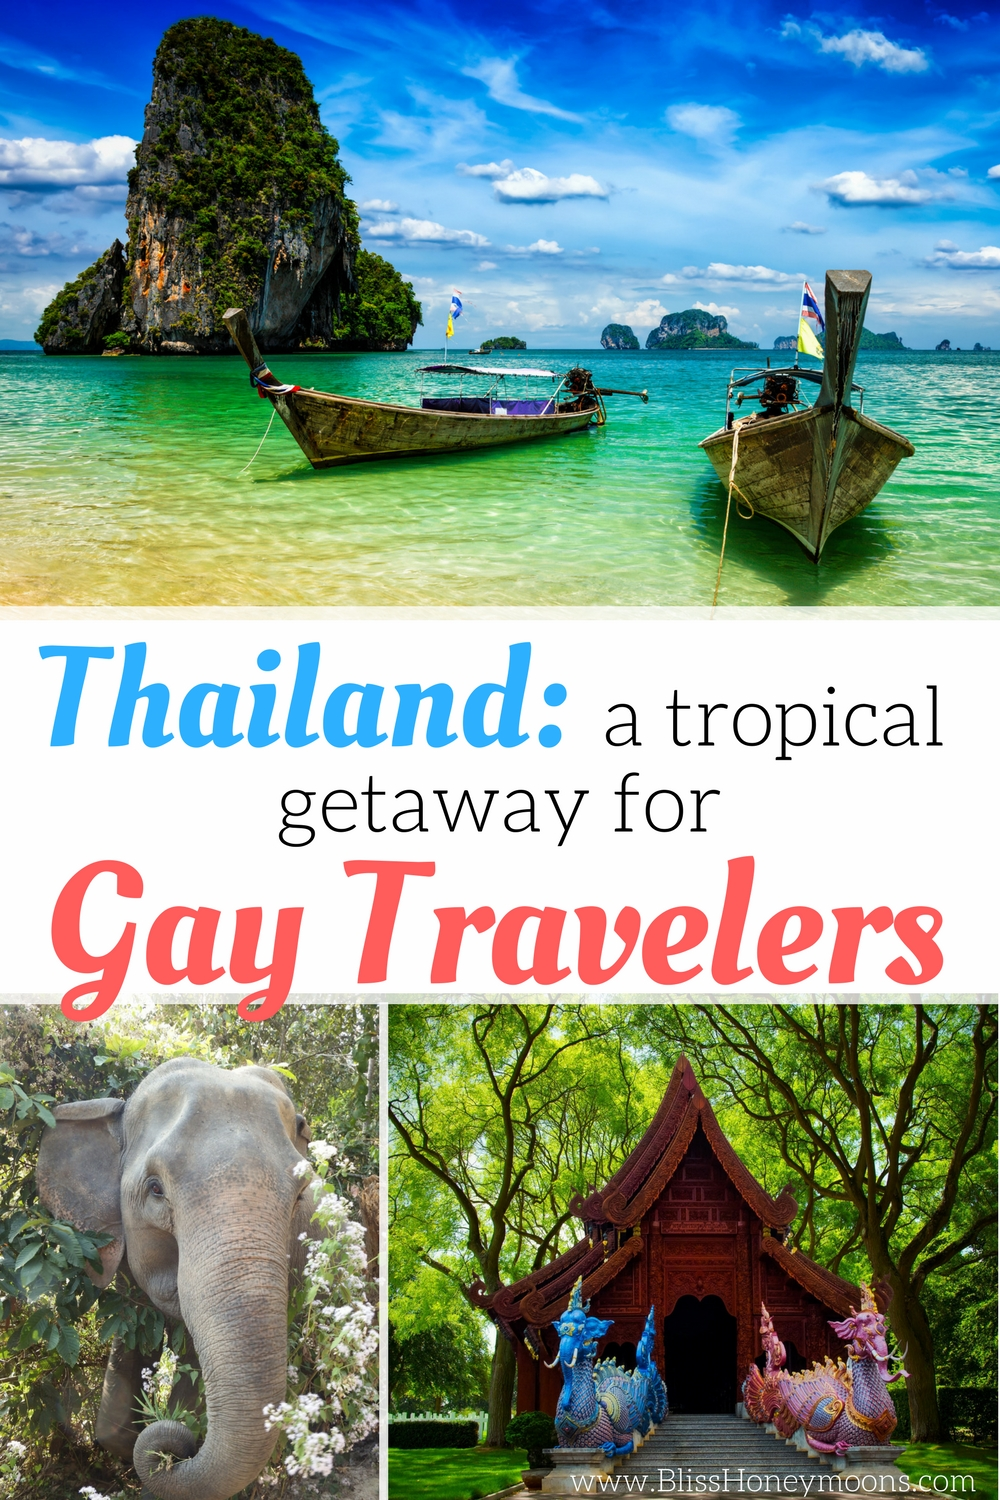 gay travel Thailand, gay travel ideas, Thailand gay review, Thailand romantic travel review, best gay travel destination, Bliss Honeymoons review, best gay romantic travel agent, LGBTQ travel Thailand, lesbian travel Thailand, Bangkok gay travel review, Chiang Mai gay travel review, Ko Samui gay travel review